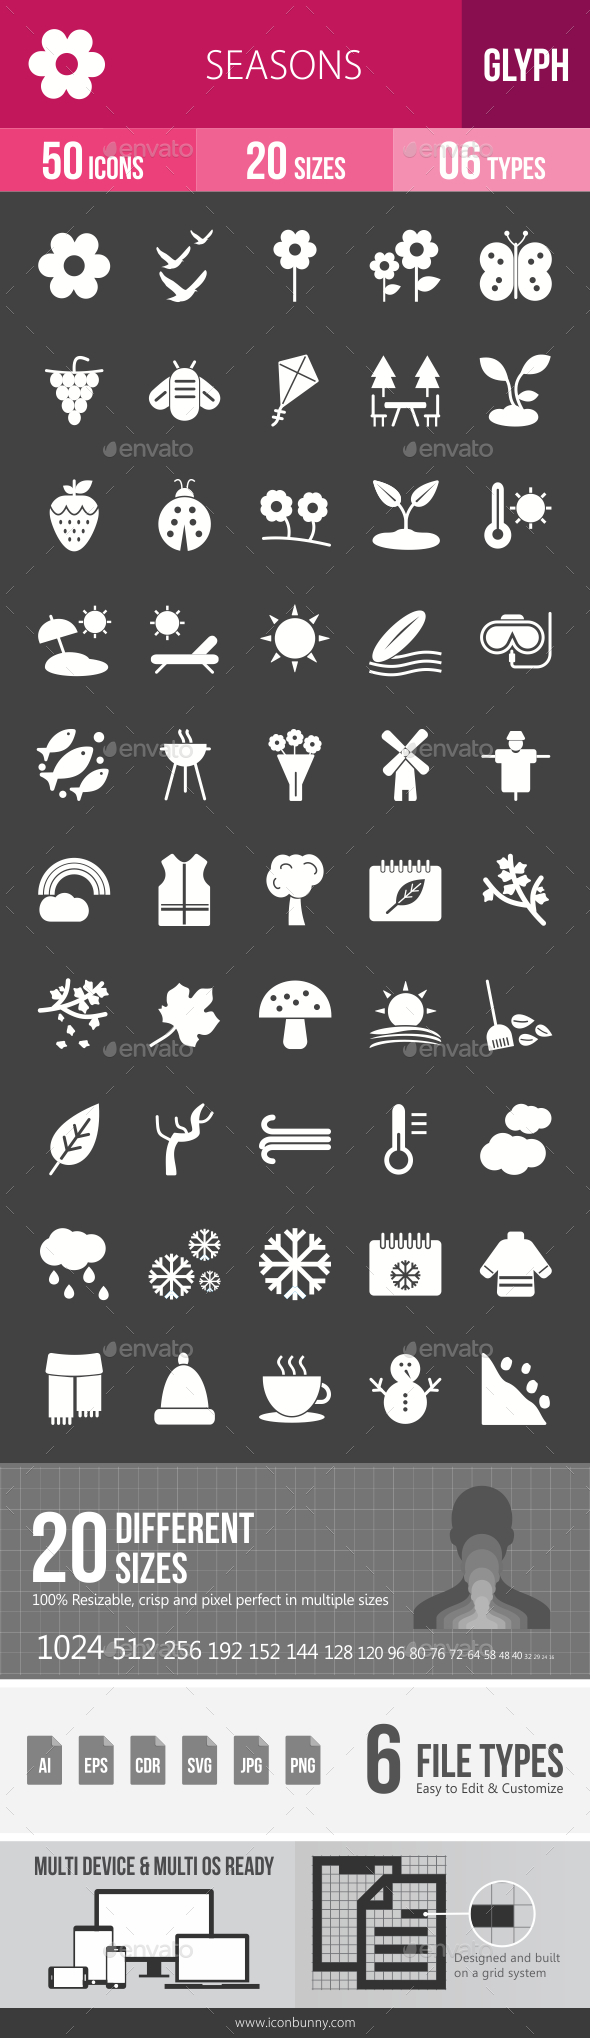 Seasons Glyph Inverted Icons - Icons